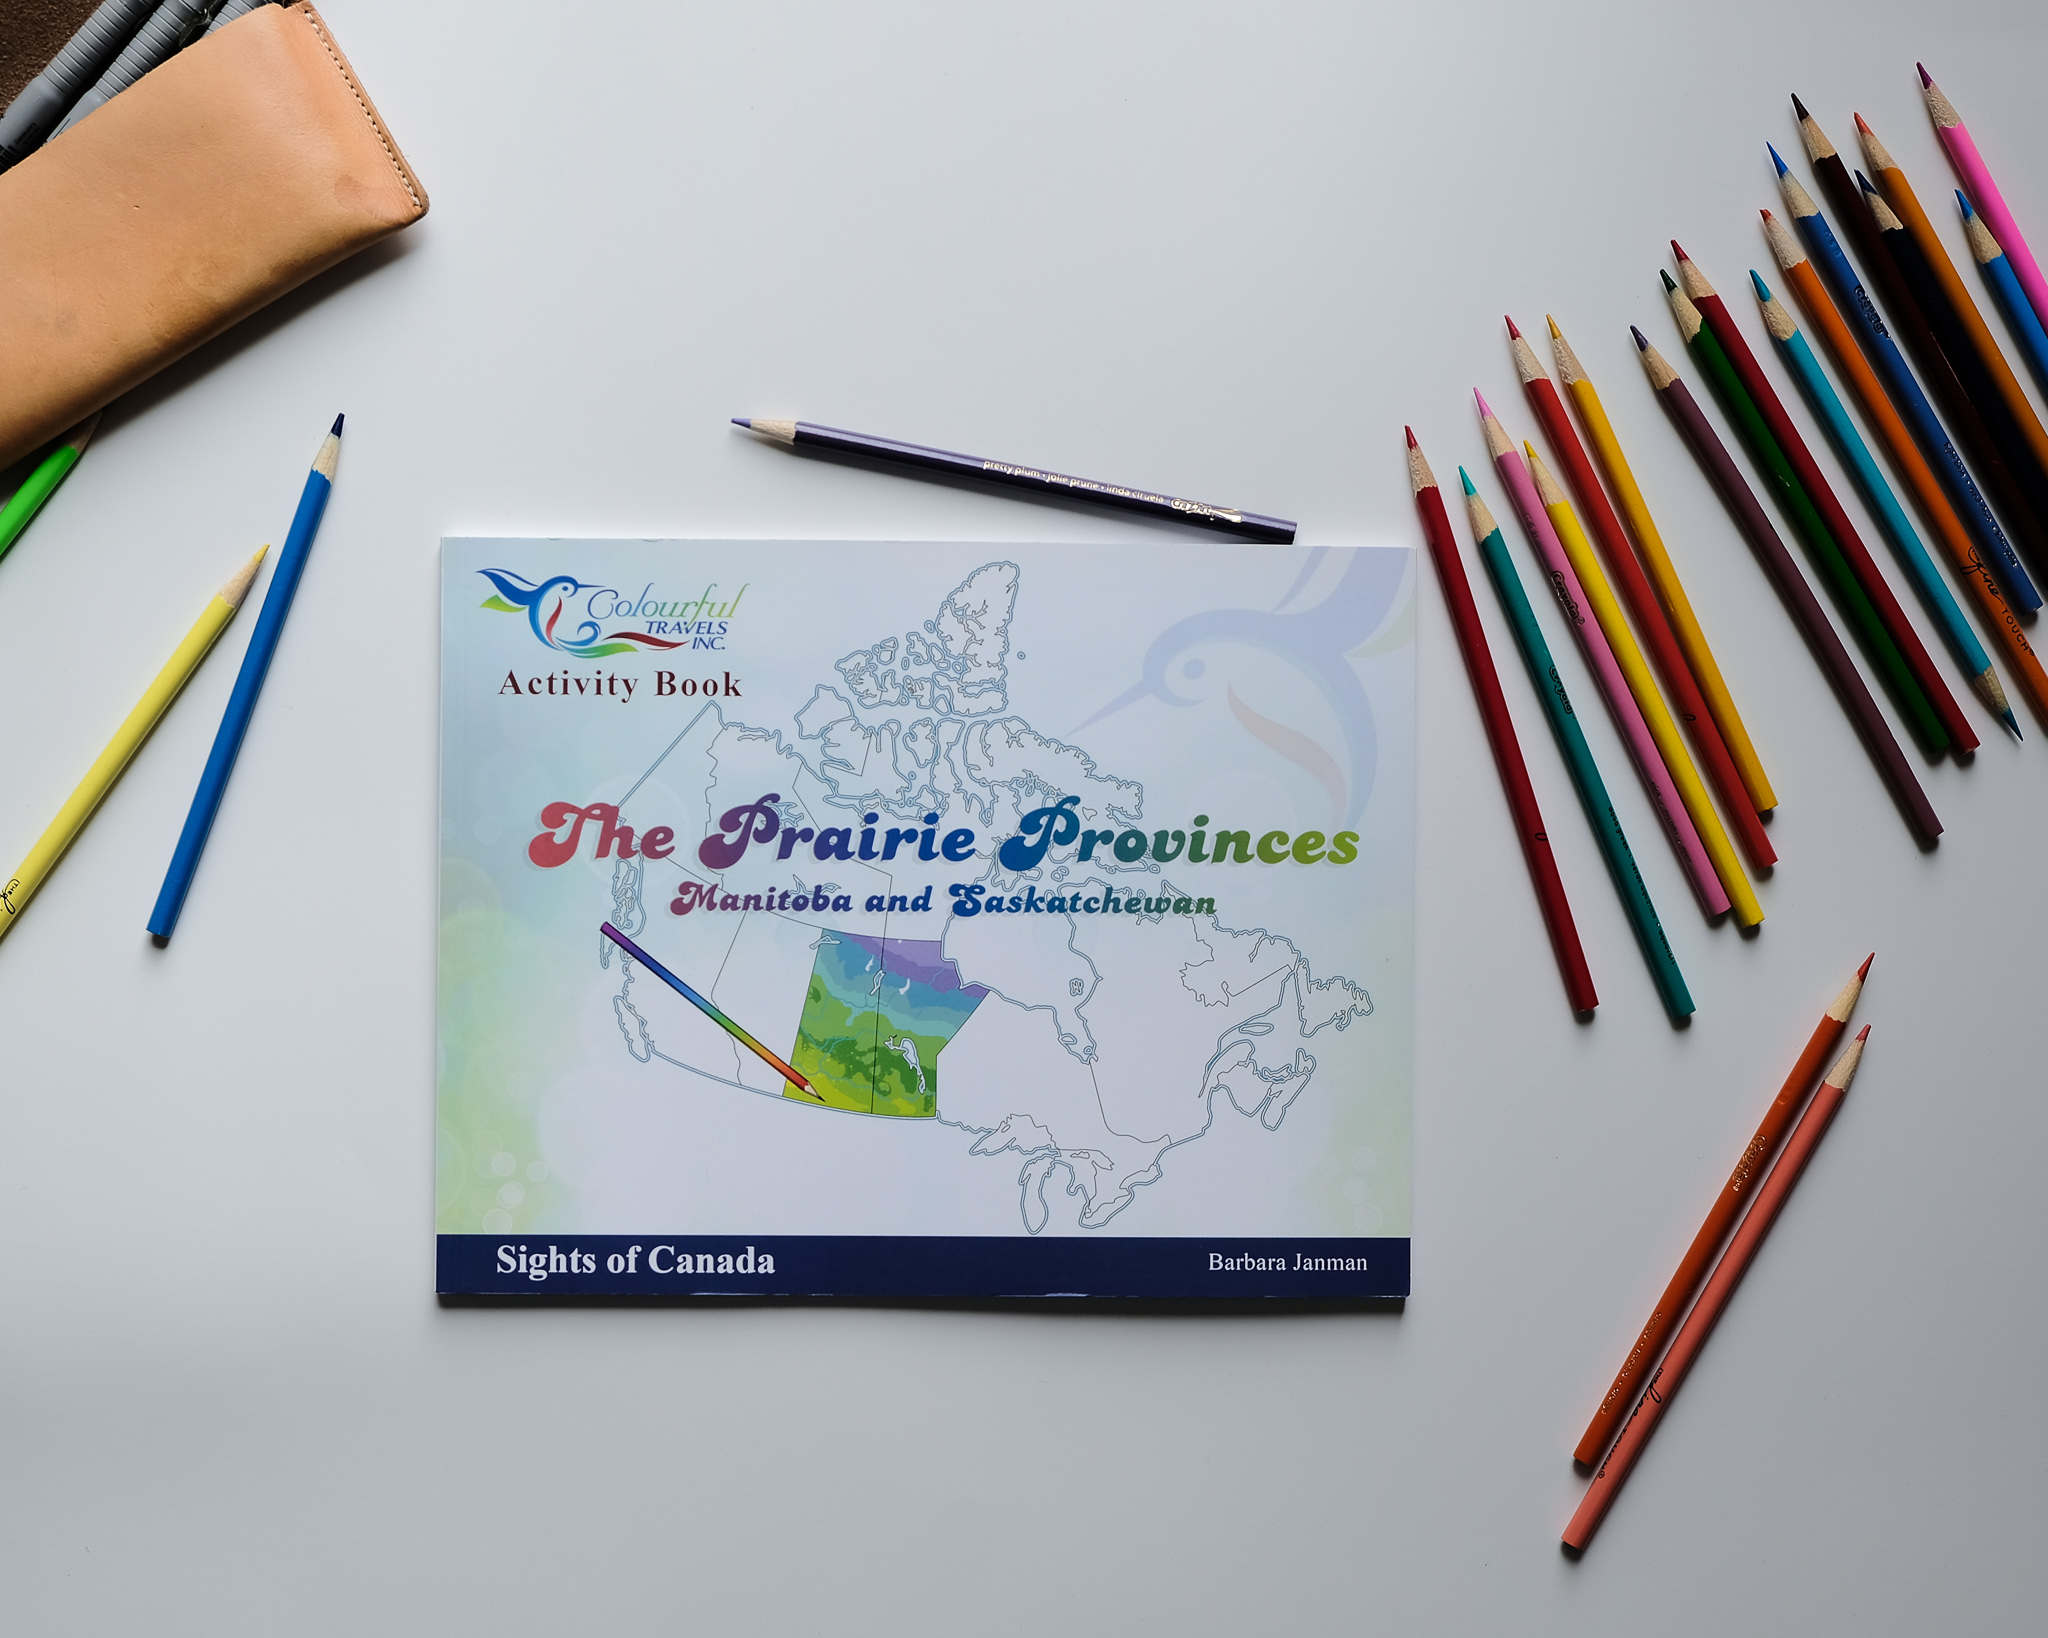 The Prairie Provinces - Sights of Canada